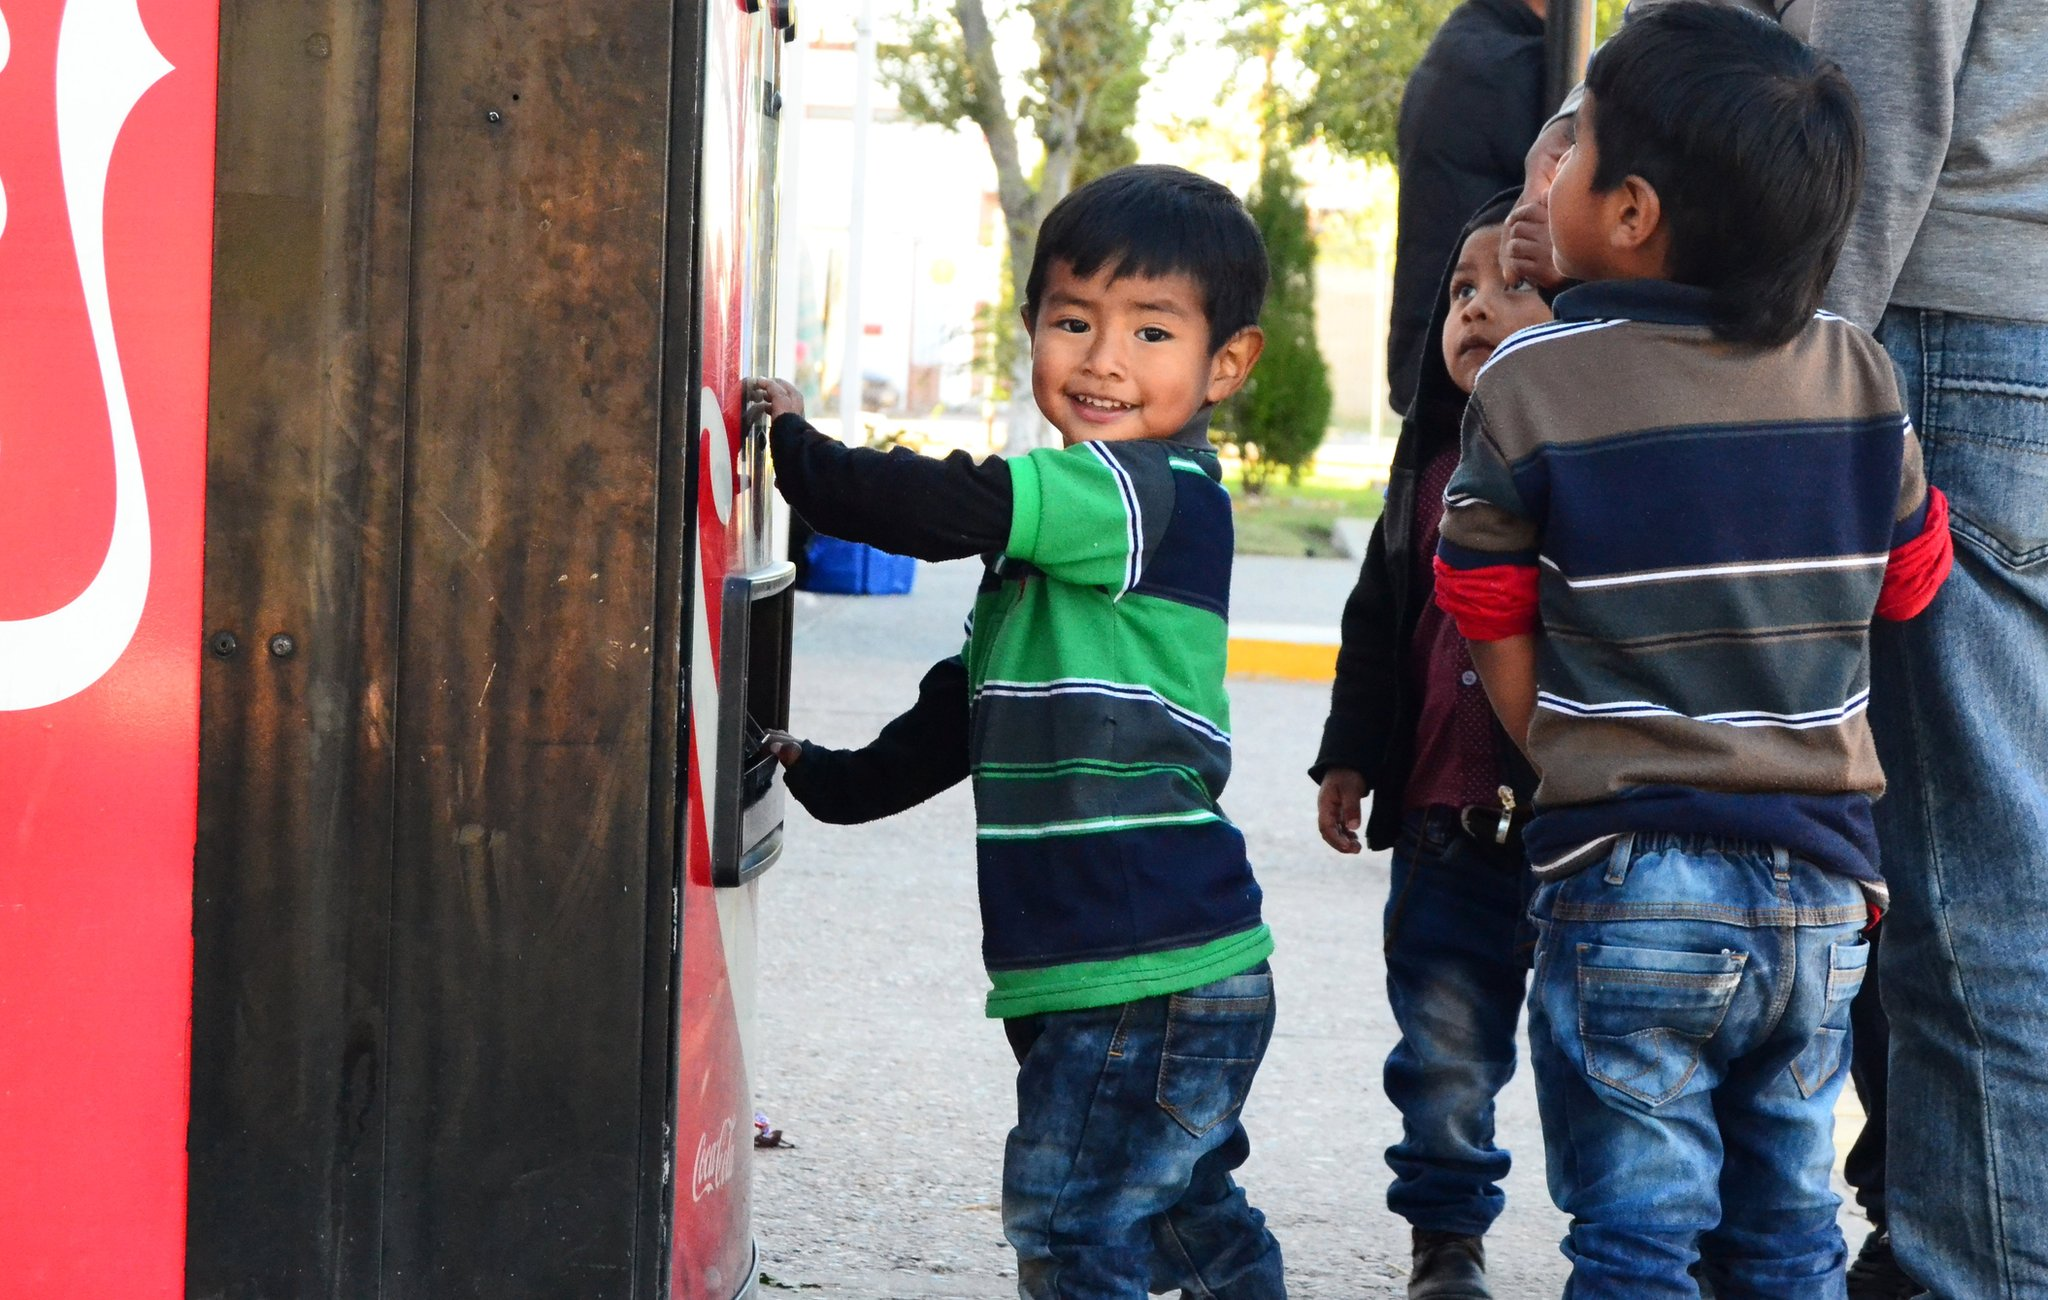 Rogerio's son playing at Coca-Cola machine